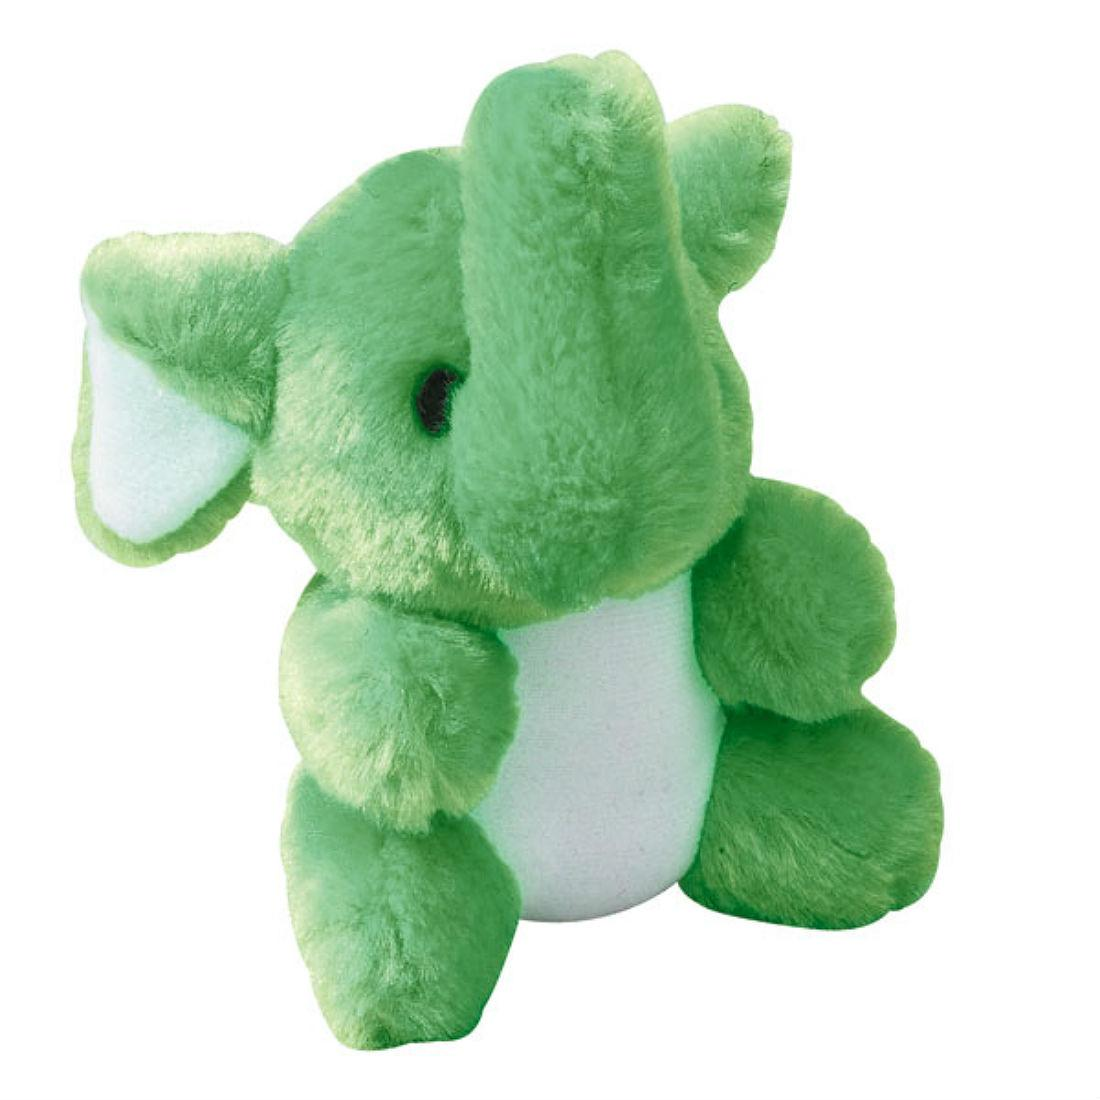 Zanies Kutie Pies Dog Toy - Ellie Elephant